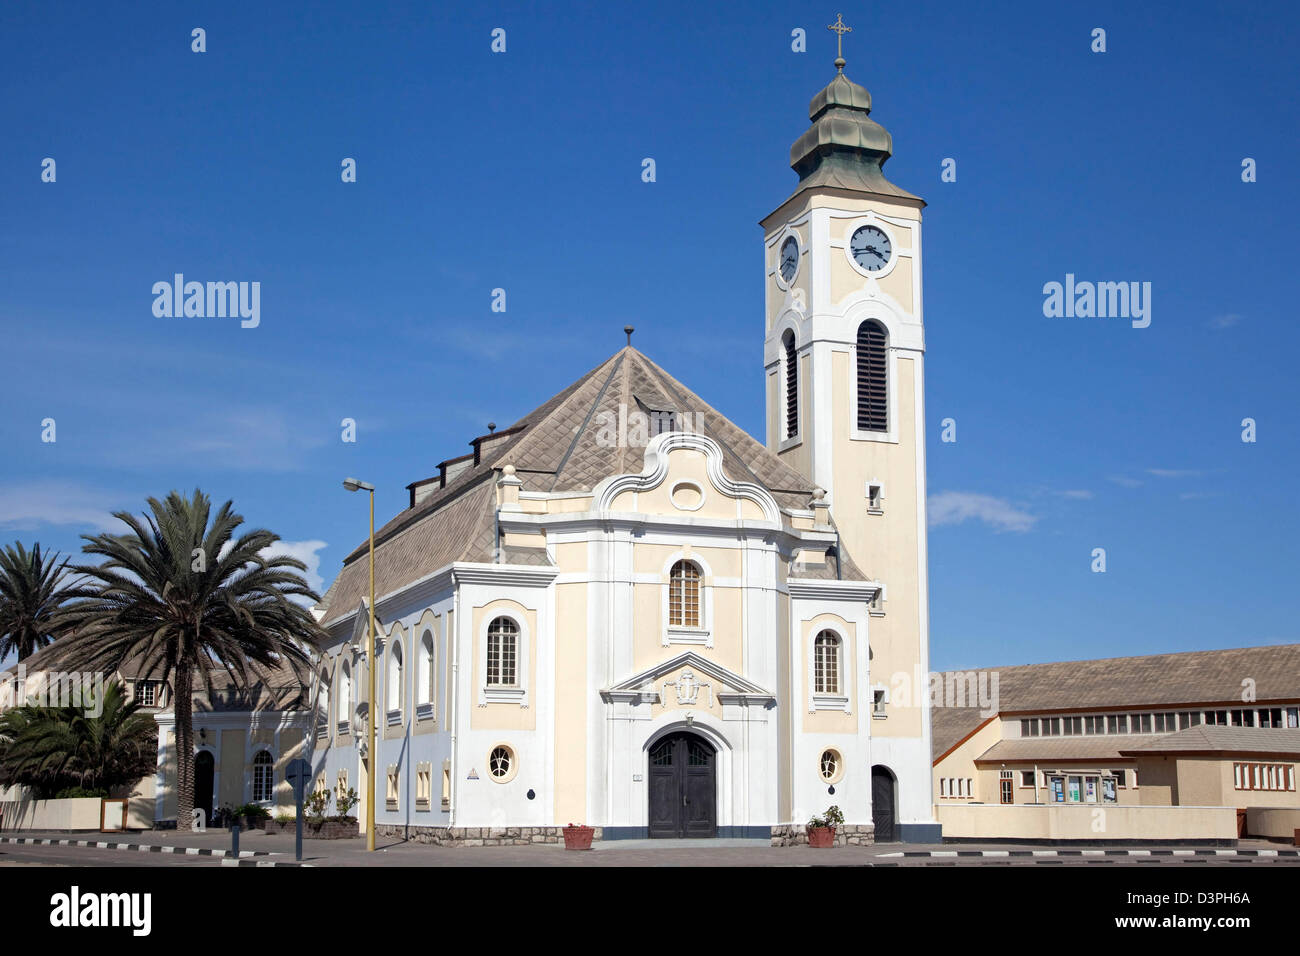 Lutheran Church in Swakopmund, Namibia, South Africa - Stock Image